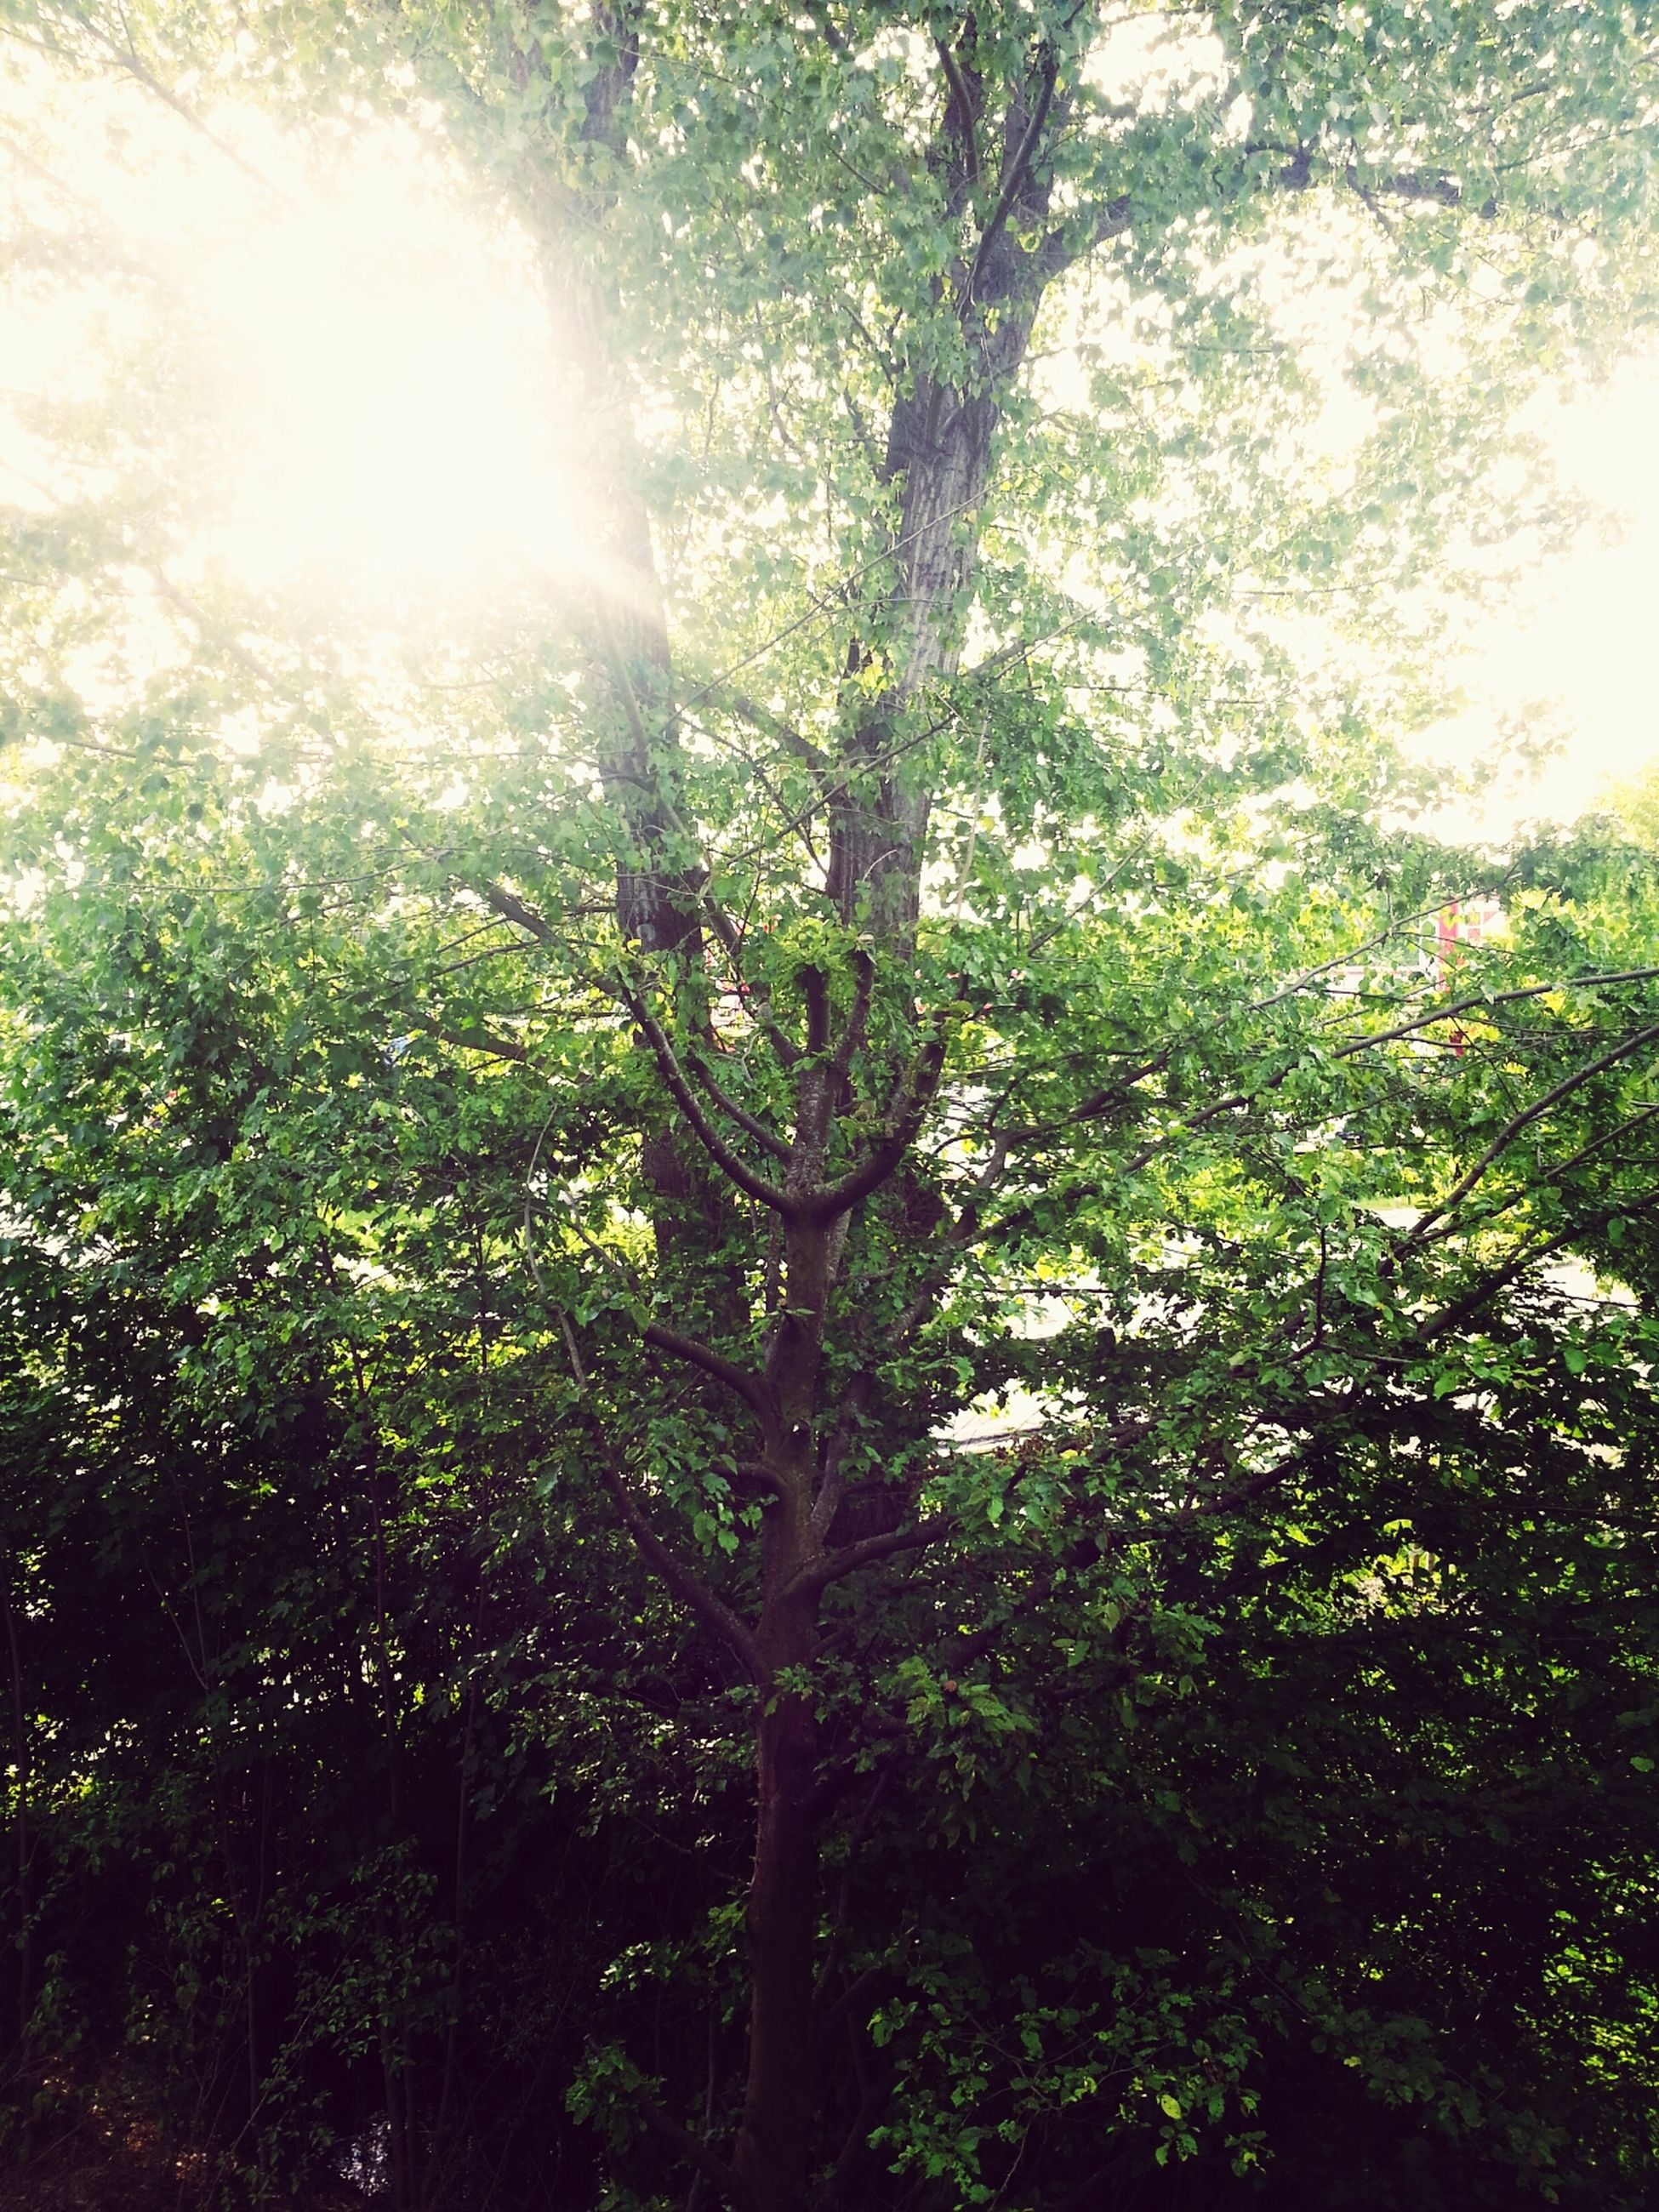 tree, growth, sun, sunlight, low angle view, sunbeam, nature, branch, tranquility, beauty in nature, lens flare, green color, forest, tree trunk, leaf, day, sunny, outdoors, no people, plant